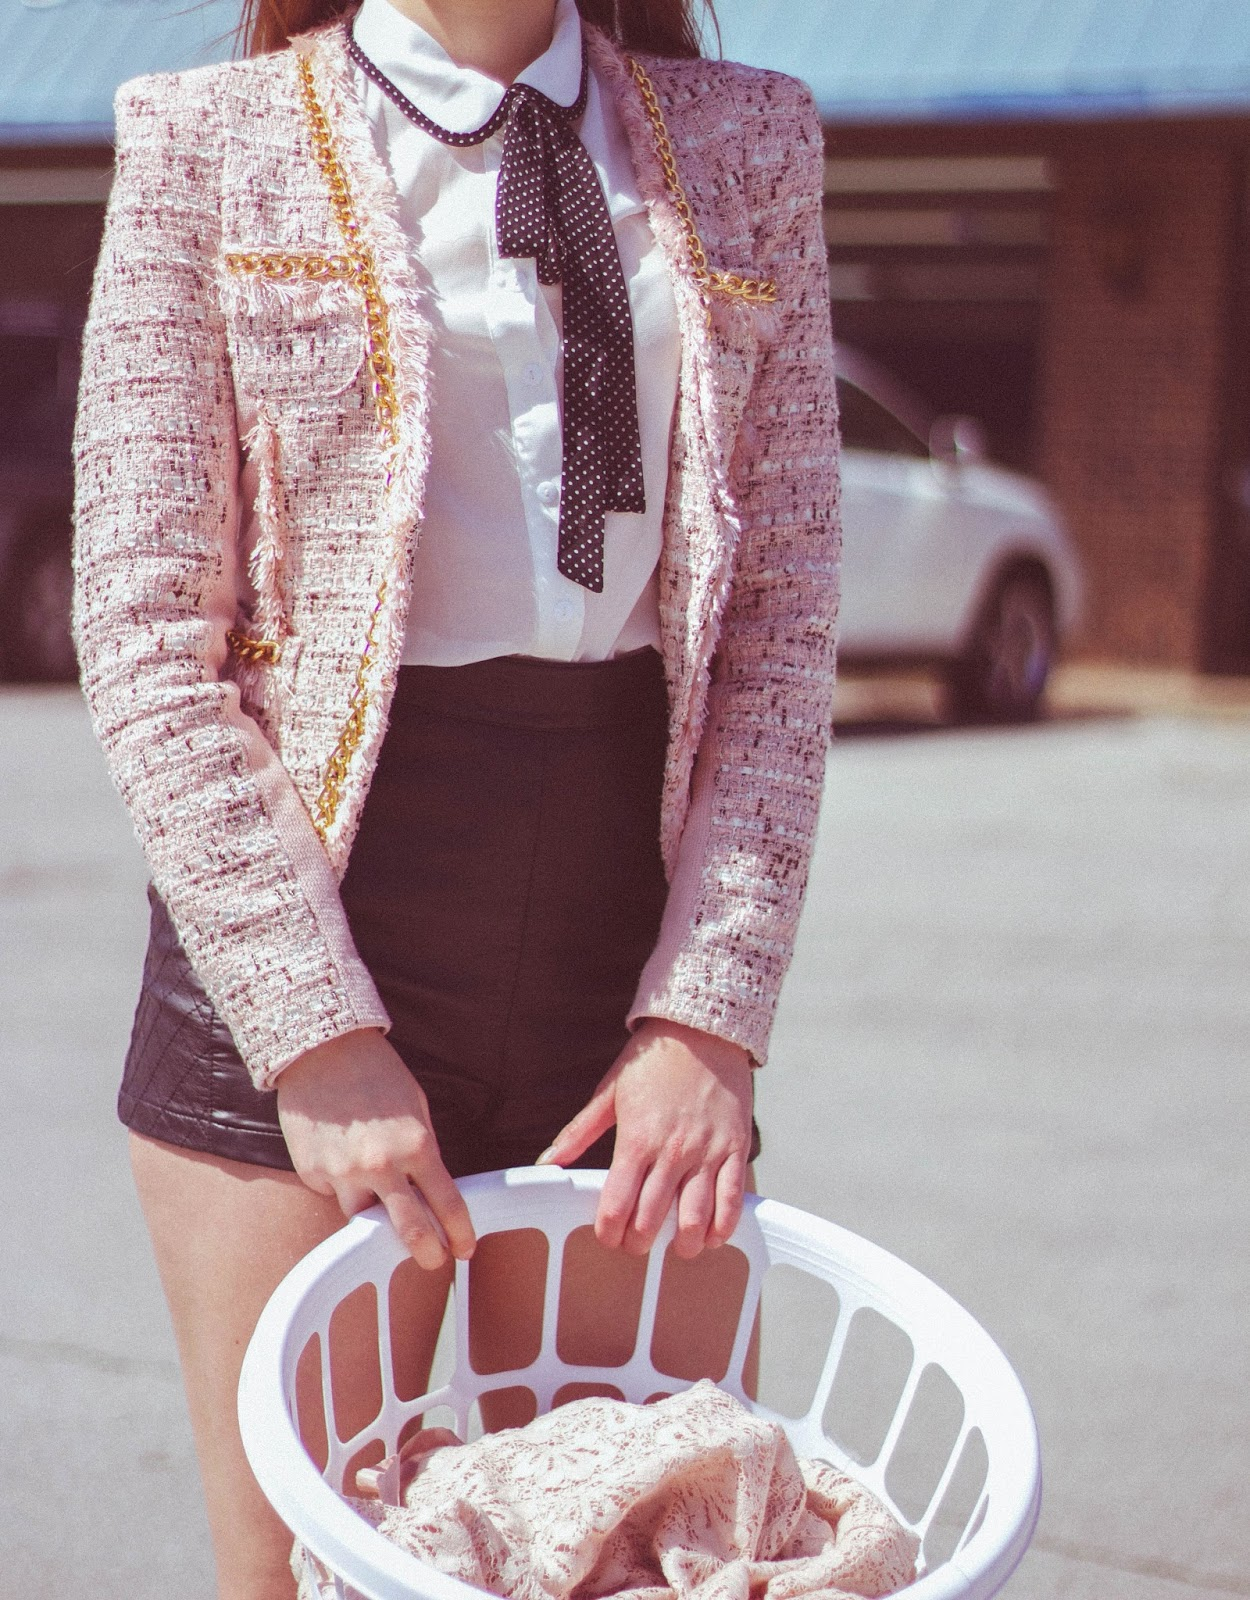 60s style, 60's inspired outfit, pink tweed jacket, high waisted shorts, forever 21, ruffle socks, american apparel, retro outfit, cat eye, peter pan collar blouse, girly, feminine, stop cat calling, fashion blogger, film blogger, film, movies